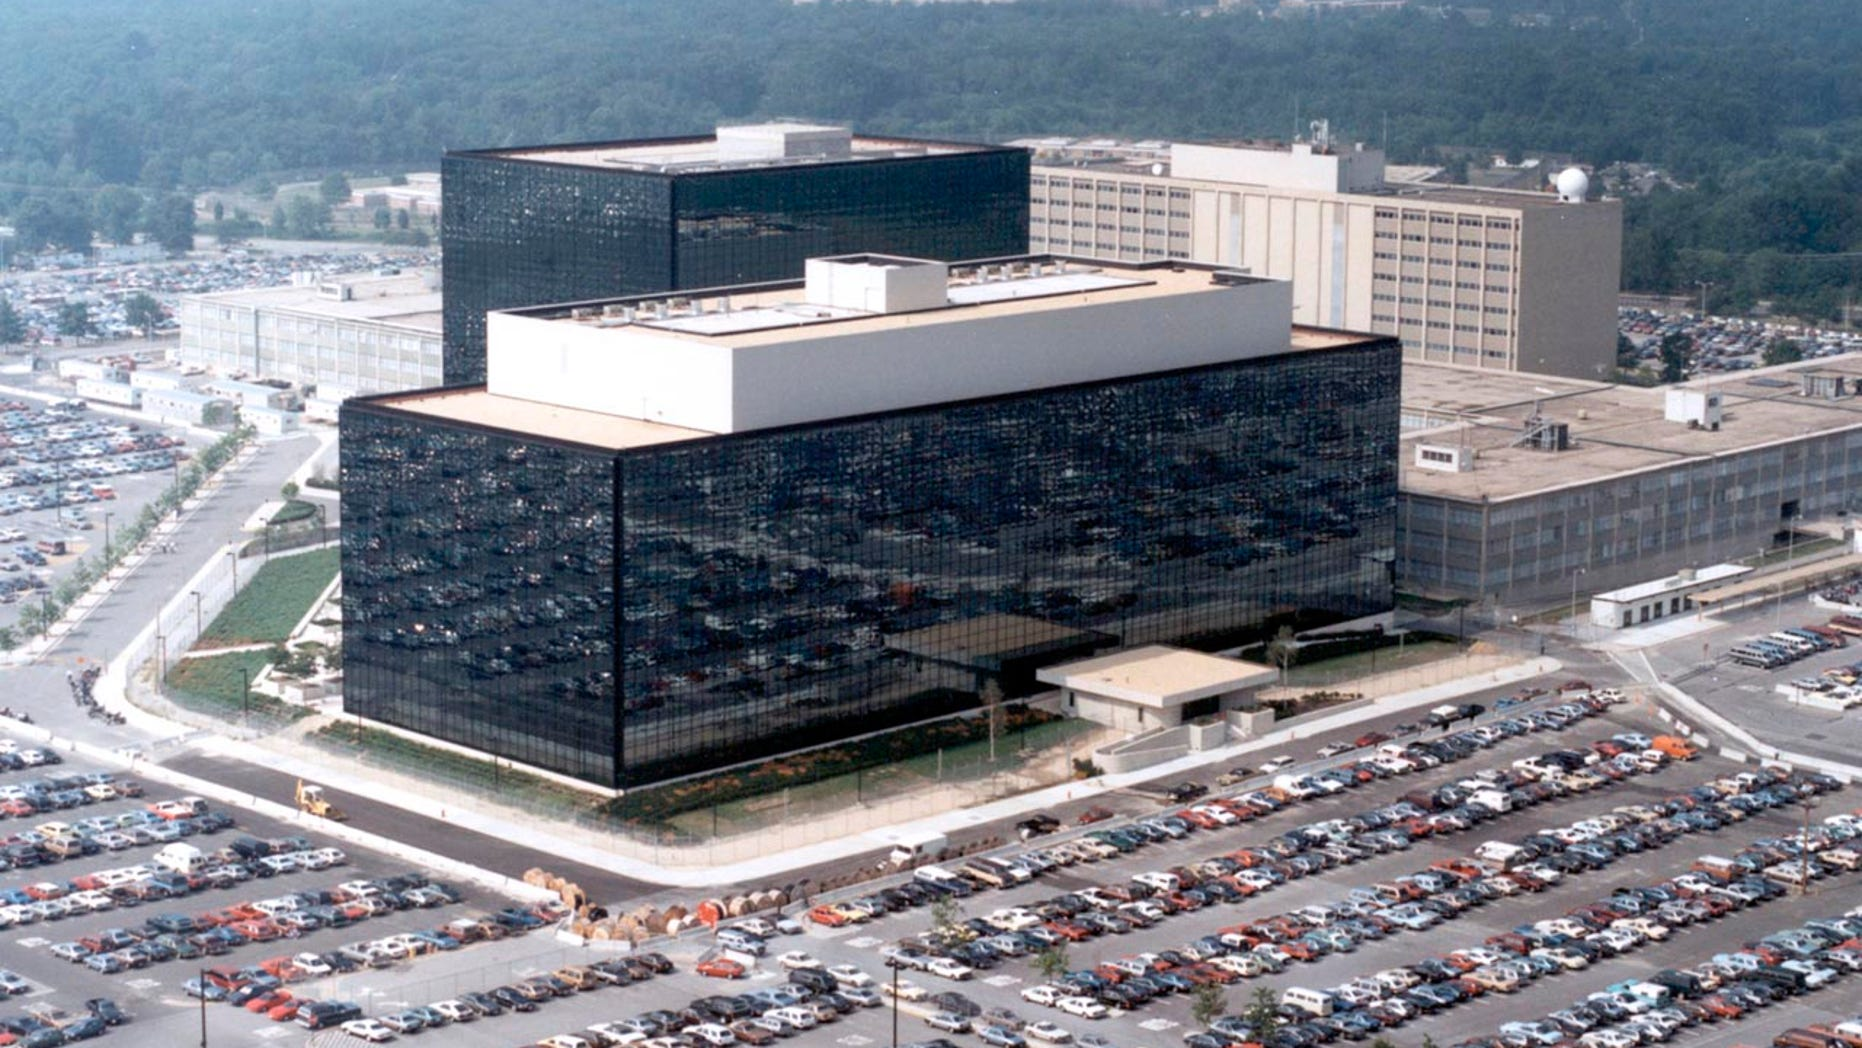 An undated aerial handout photo shows the National Security Agency headquarters building in Fort Meade, Maryland.